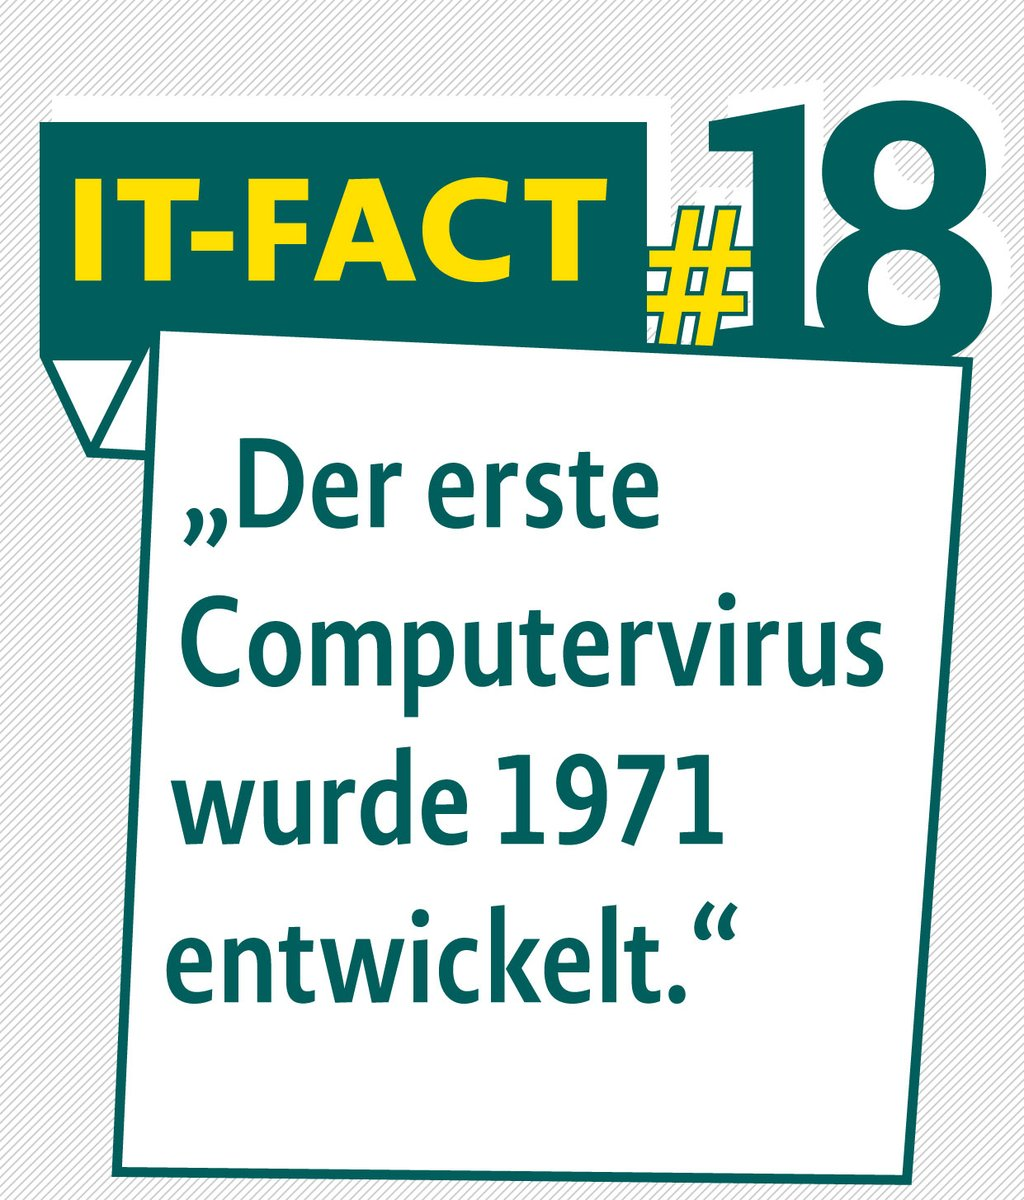 #cybersecurity